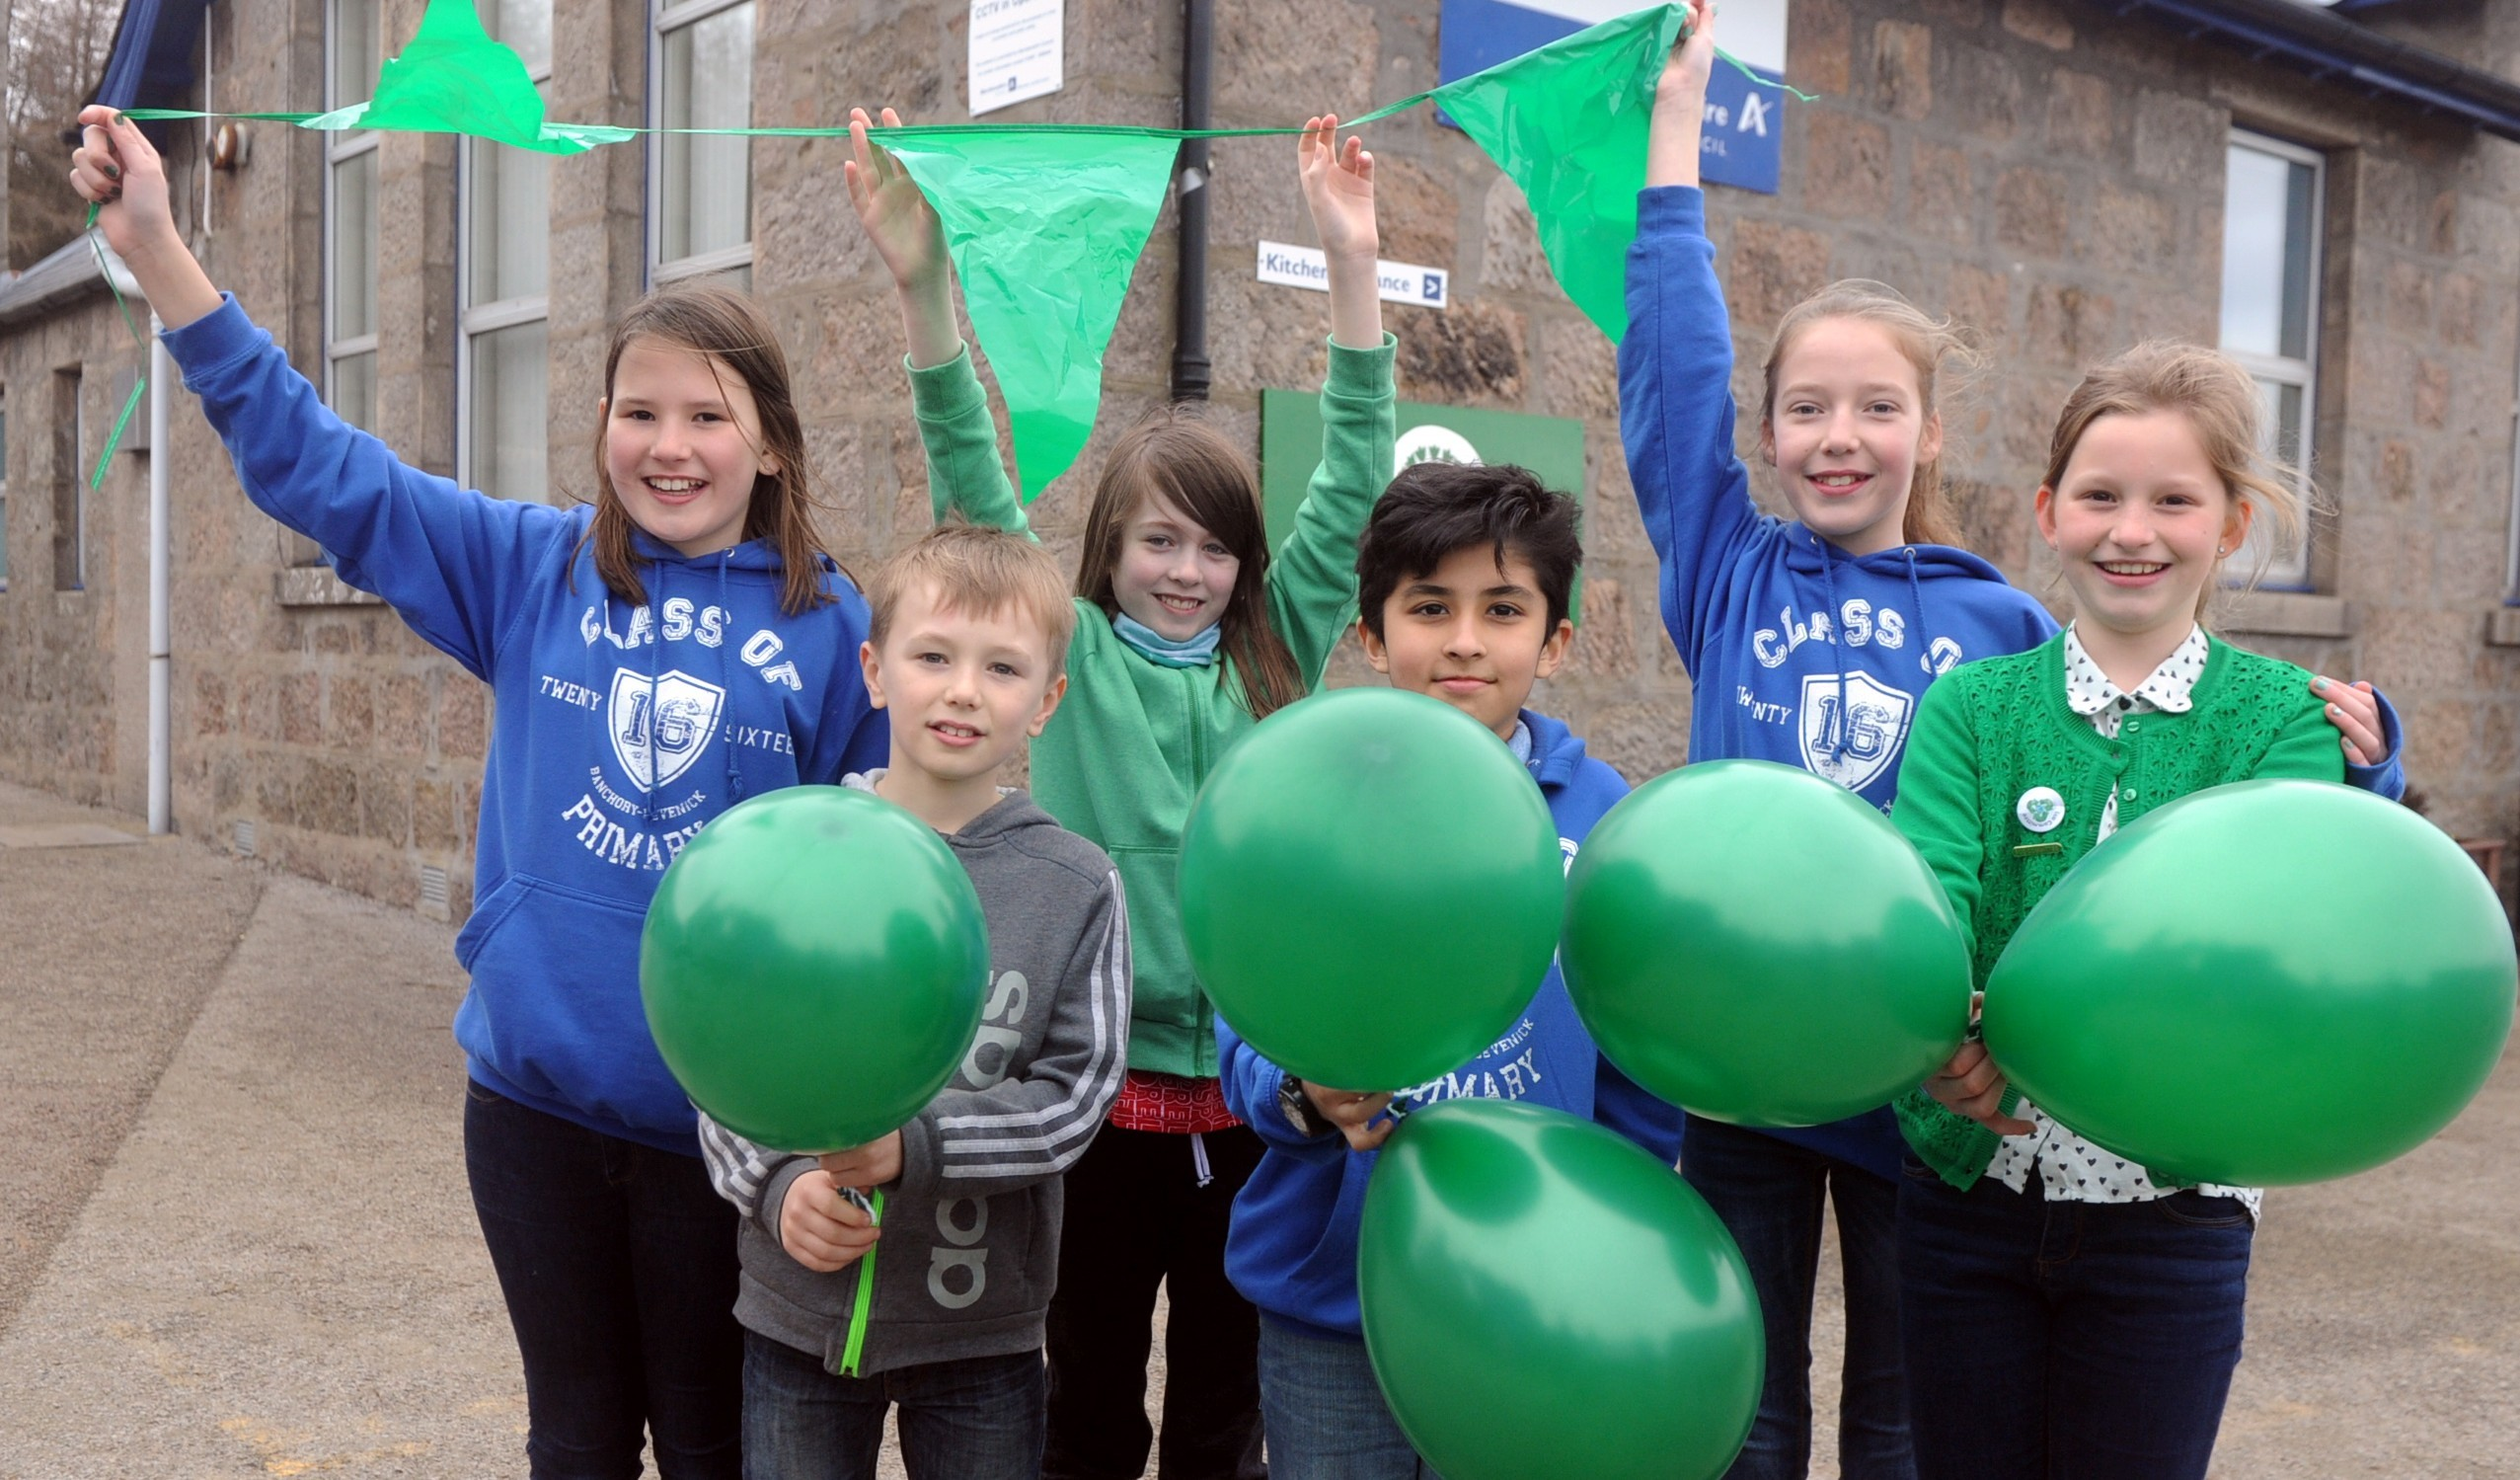 Pupils from left, back, Alex Welsh,   Morven Farquharson, Lucy Stephen,   and front, from left, Lewis Grant,  Taaneer Niazi,   Hasse Verheyde.